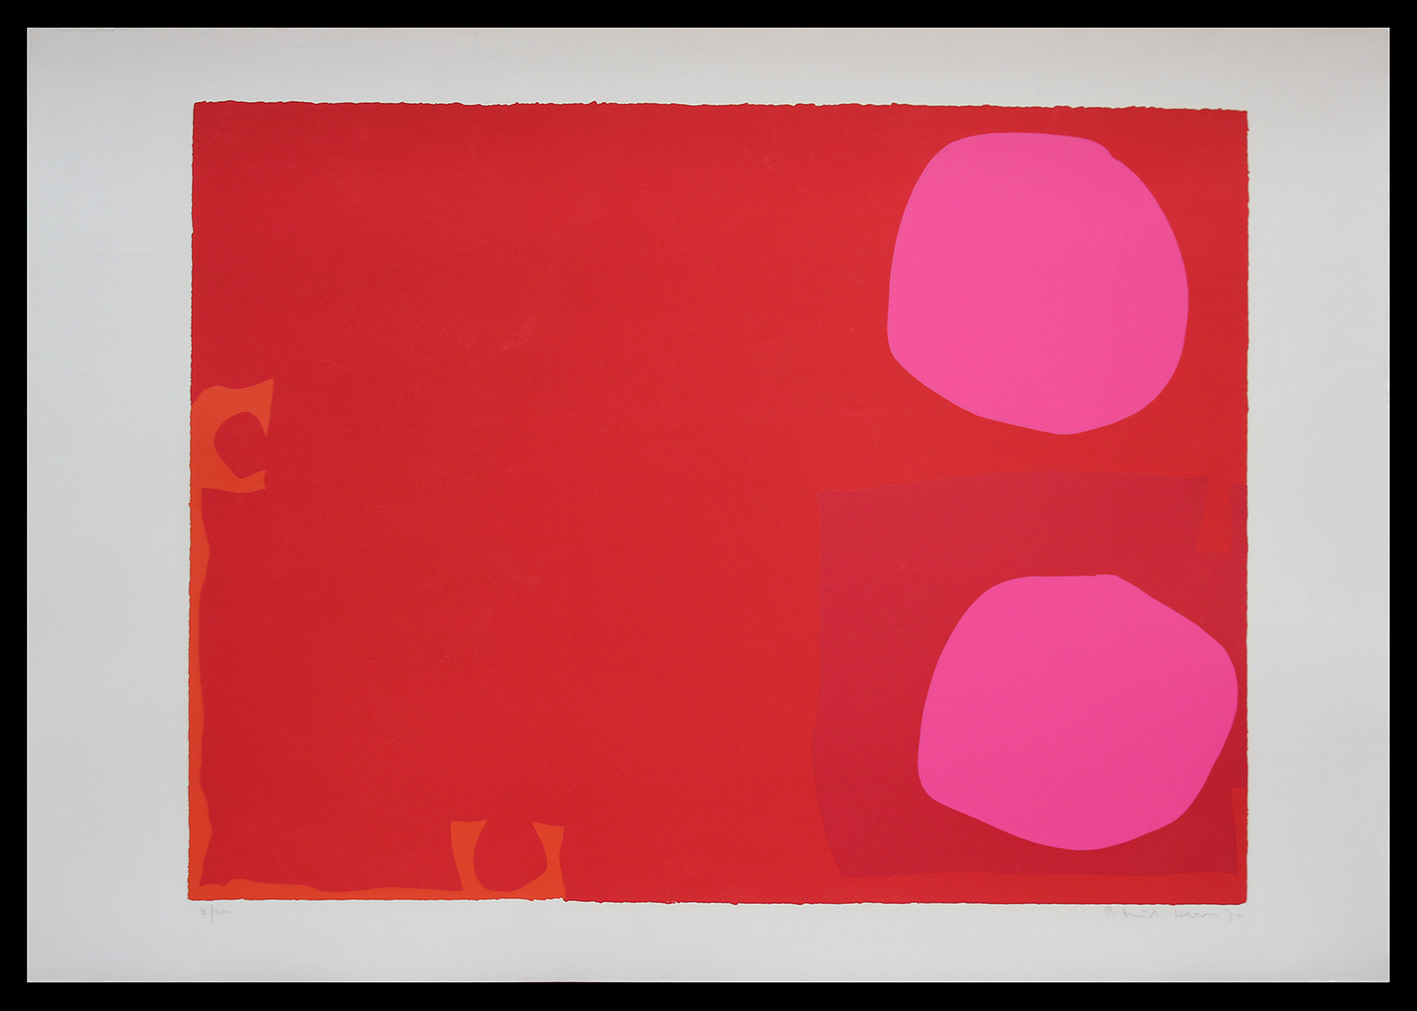 "<span class=""link fancybox-details-link""><a href=""/artists/93-patrick-heron-cbe/works/4047-patrick-heron-cbe-two-pink-discs-in-dark-reds-april-1970-1970/"">View Detail Page</a></span><div class=""artist""><strong>Patrick Heron CBE</strong></div> 1920 – 1999 <div class=""title""><em>Two Pink Discs in Dark Reds: April 1970</em>, 1970</div> <div class=""signed_and_dated"">signed, dated and editioned in pencil</div> <div class=""medium"">silkscreen print in colours on wove paper, with full margins</div> <div class=""dimensions"">image: 60 x 78.5 cm (23 5/8 x 30 7/8 in.)<br /> sheet: 71 x 101 cm (28 x 39 3/4 in.)</div> <div class=""edition_details"">Edition 8 of 100</div><div class=""copyright_line"">© The Estate of Patrick Heron</div>"